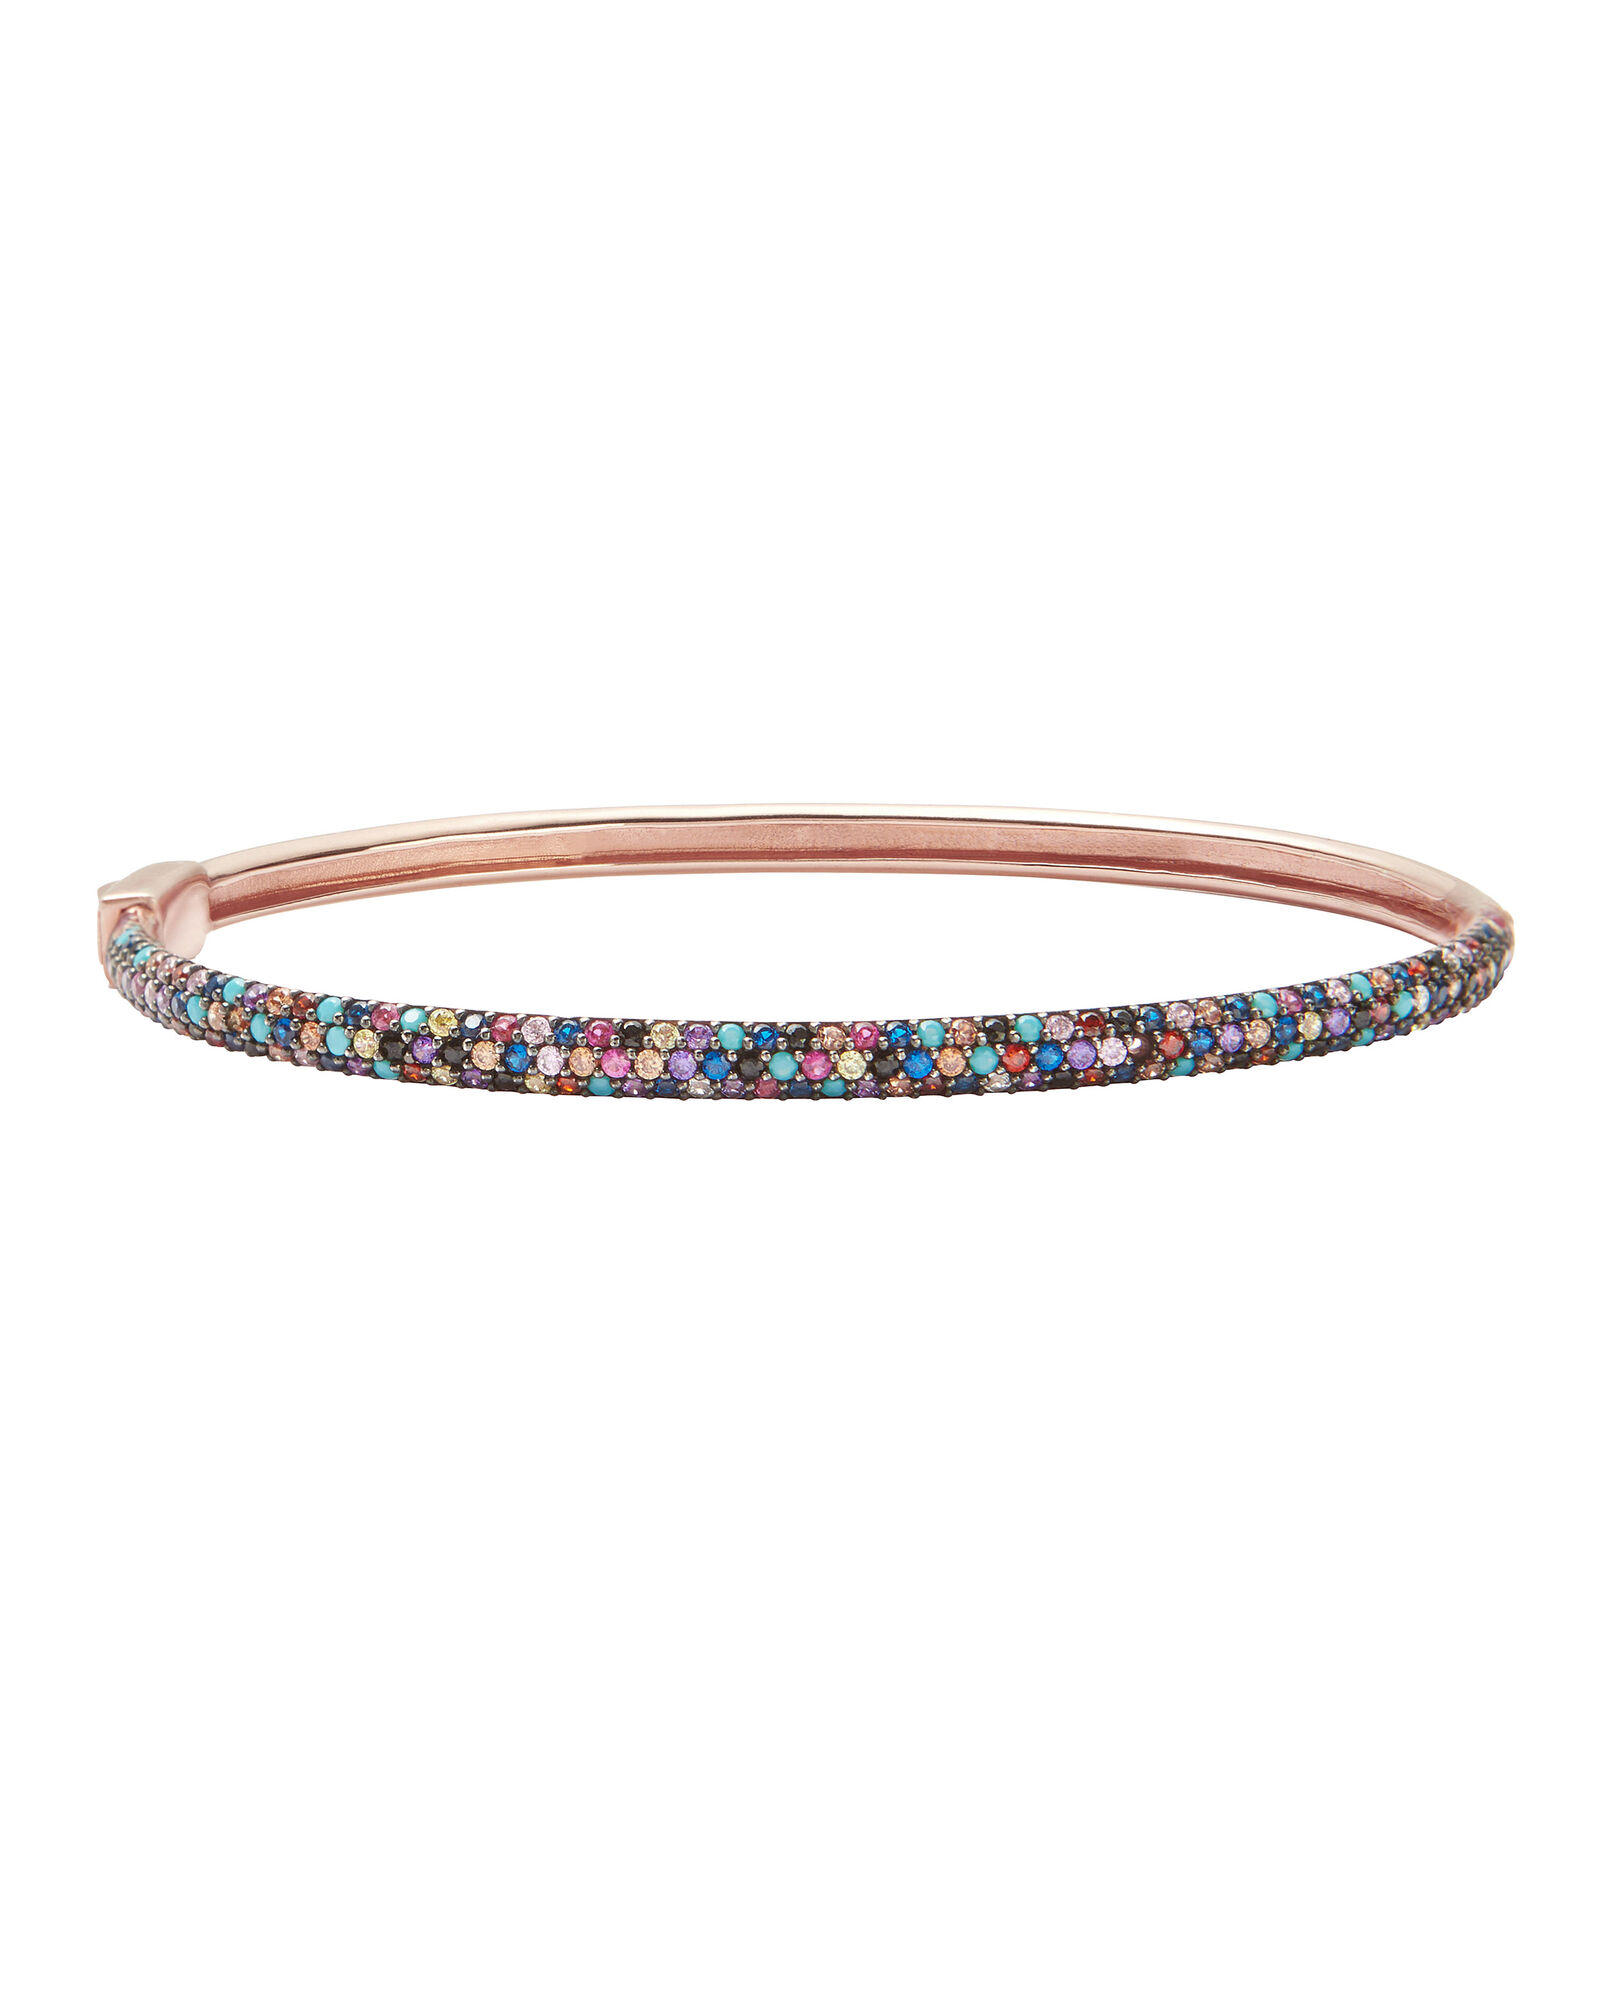 Malibu Pavé Crystal Bangle, MULTI, hi-res